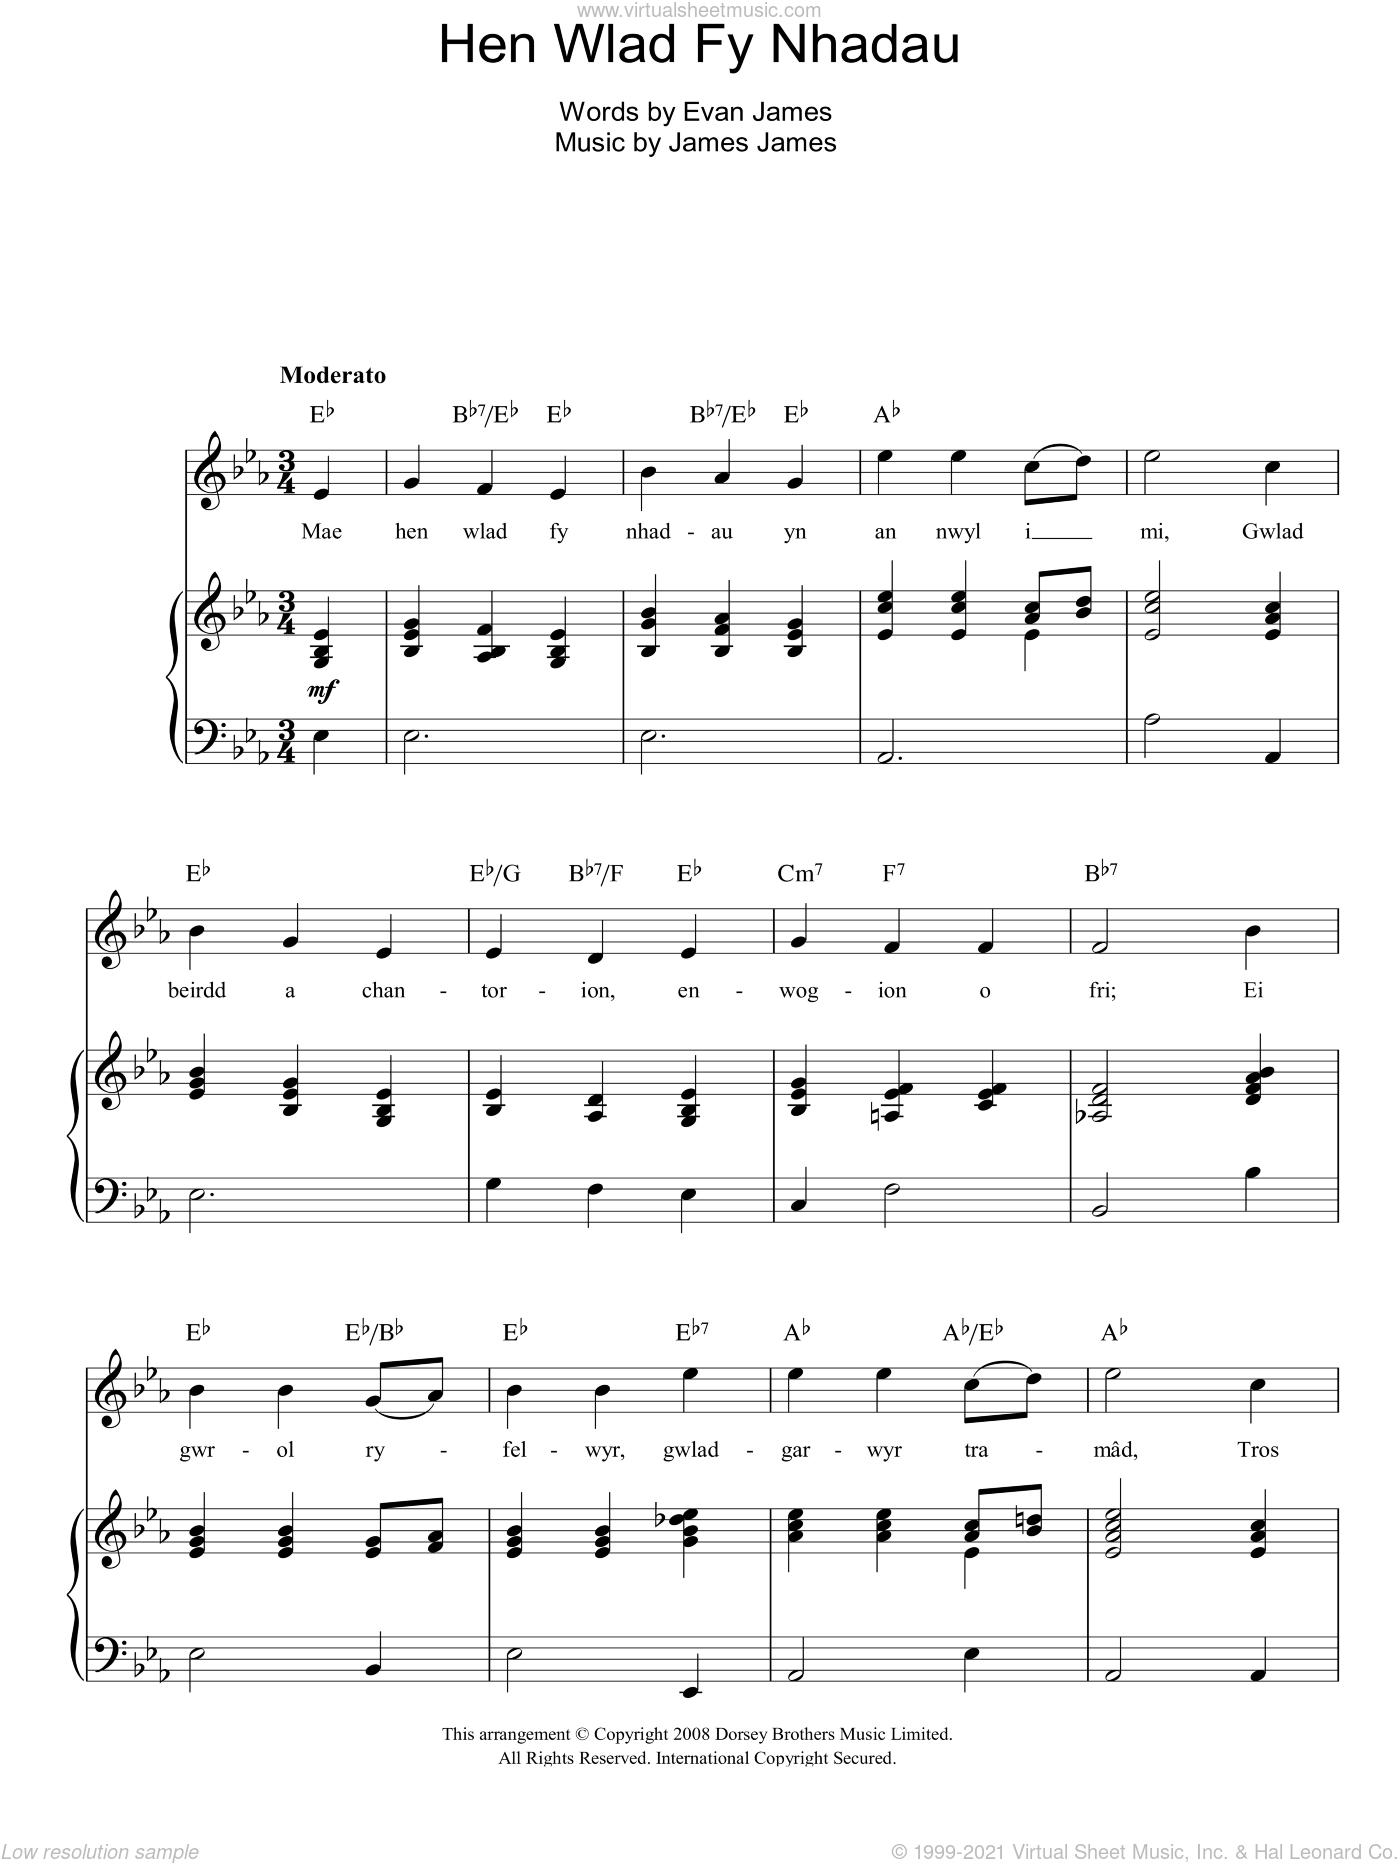 Hen Wlad Fy Nhadau (Unofficial Welsh National Anthem) sheet music for voice, piano or guitar by Evan James and James James, intermediate